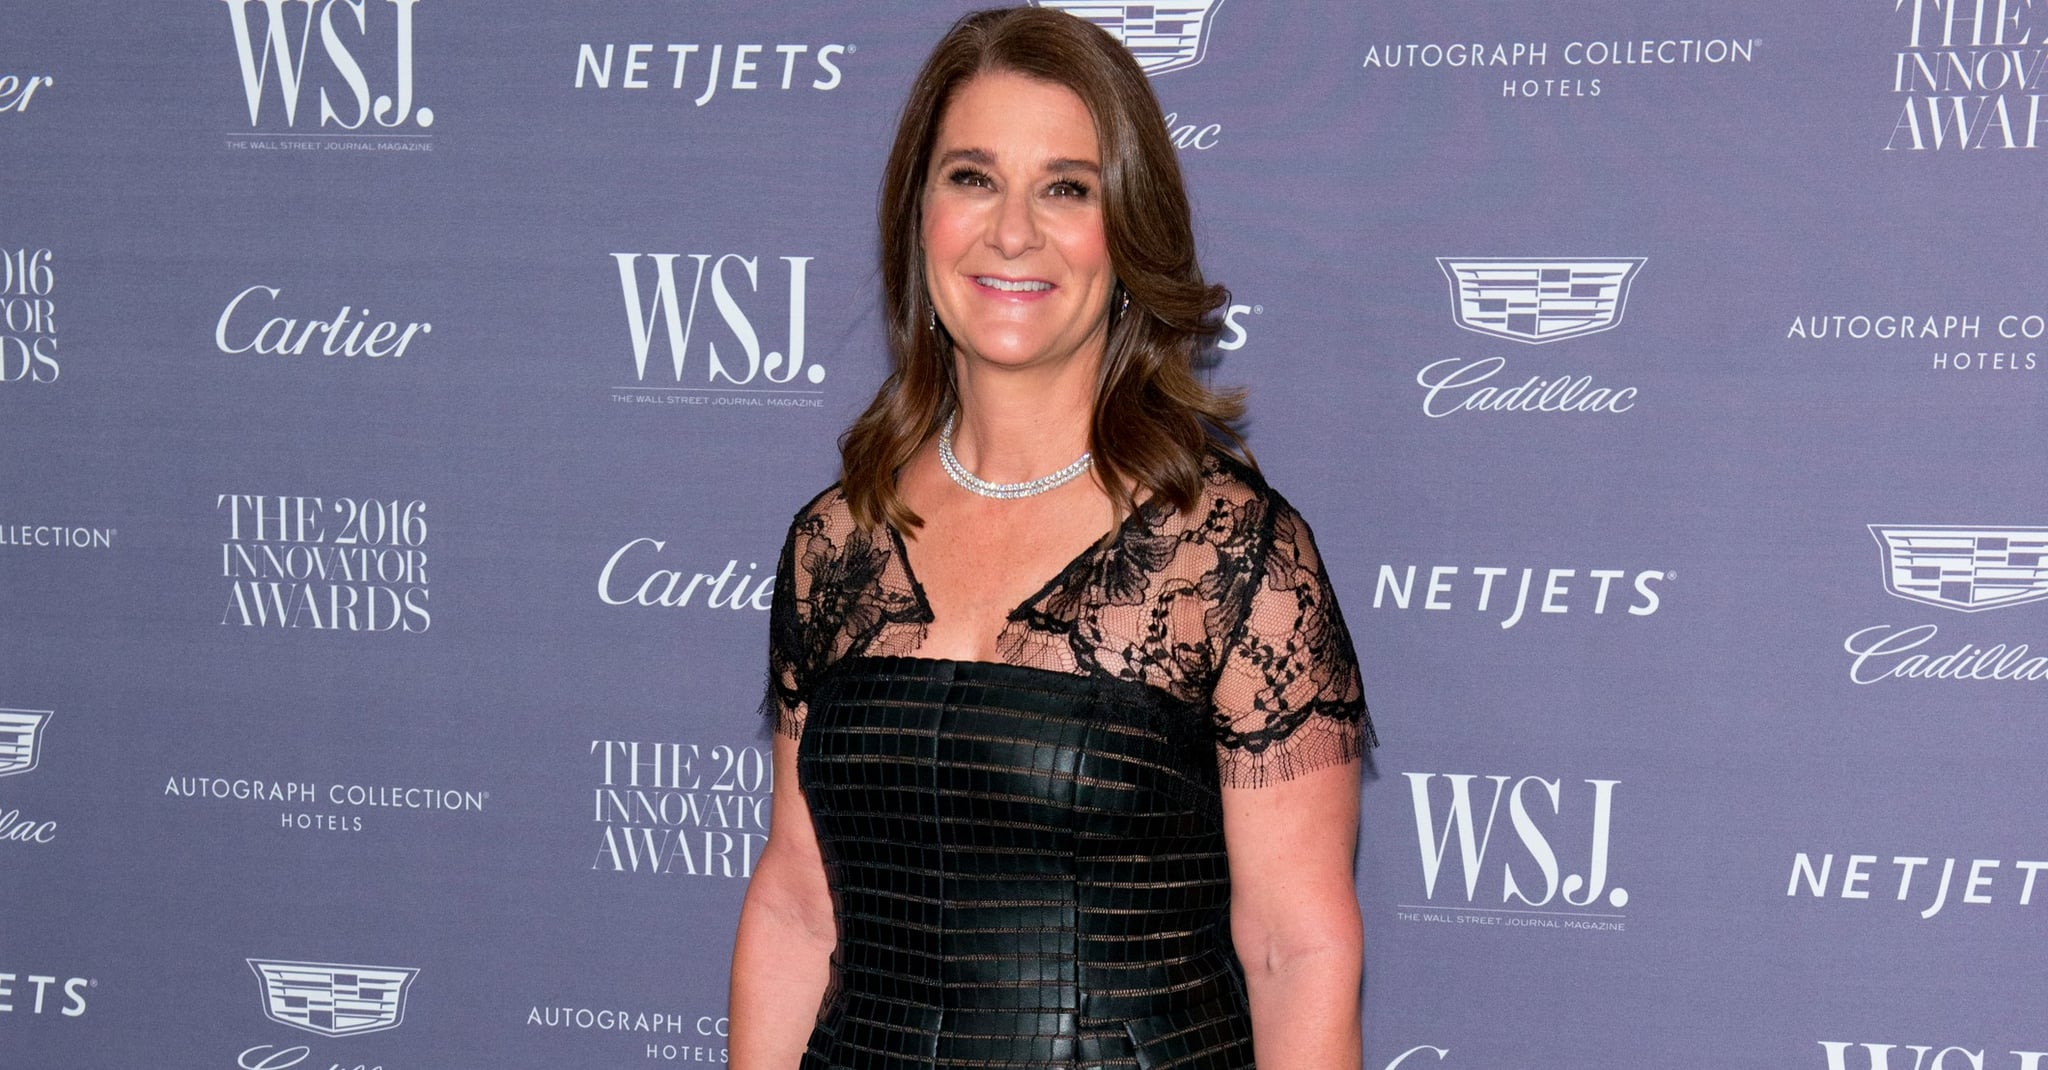 melinda gates pens essay on birth control love sex share this link